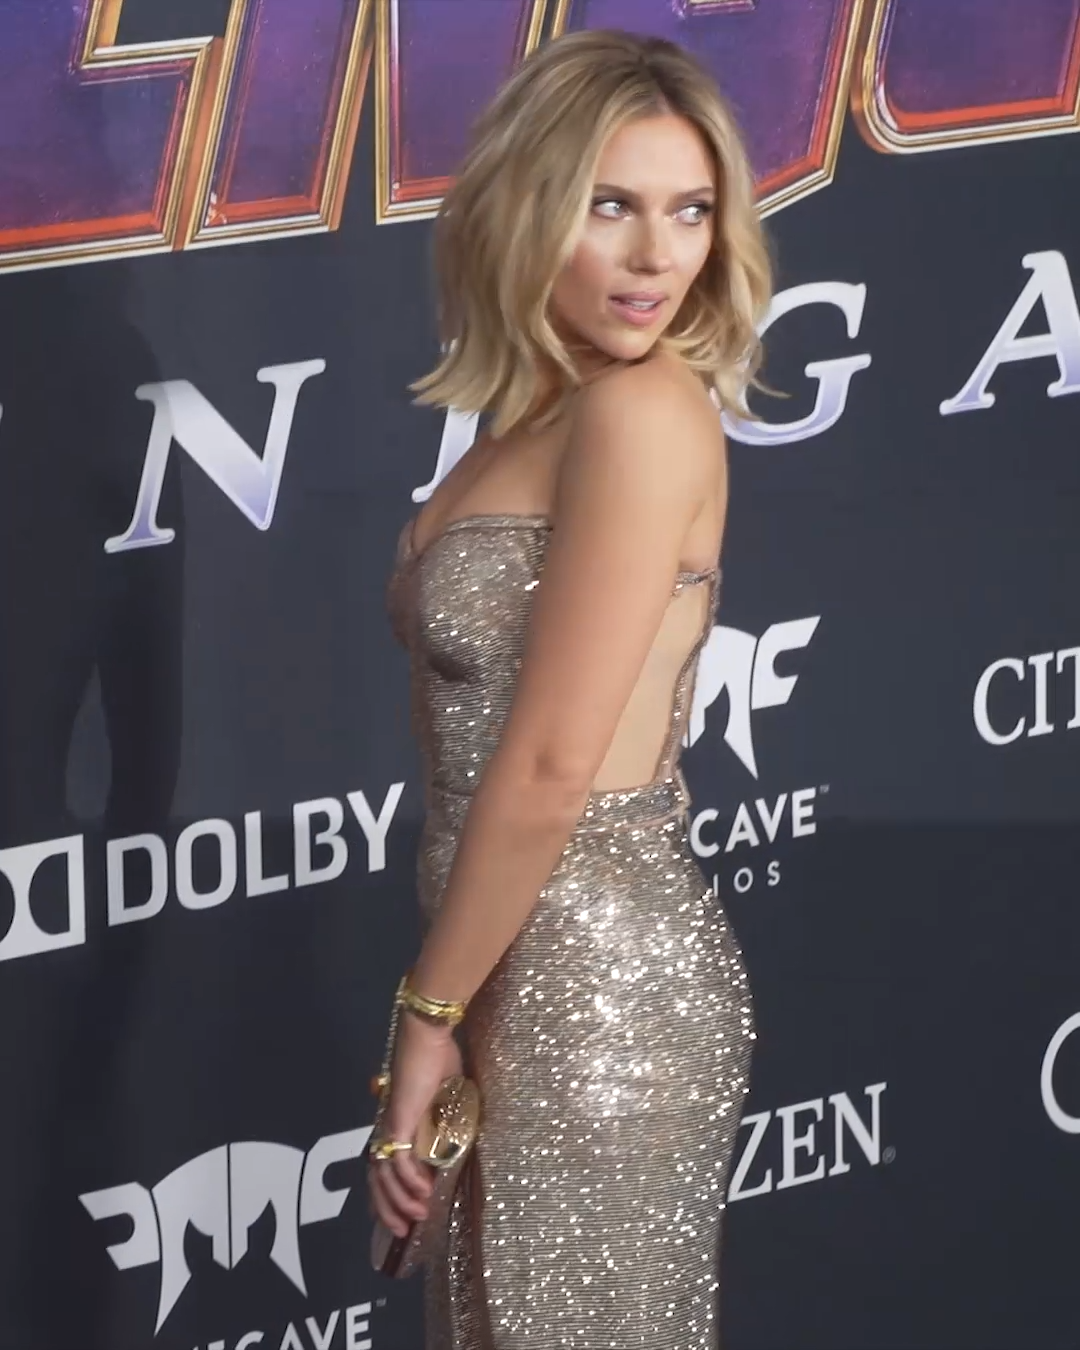 Photo of Scarlett Johansson Wears Versace to the Avengers: End Game Premiere